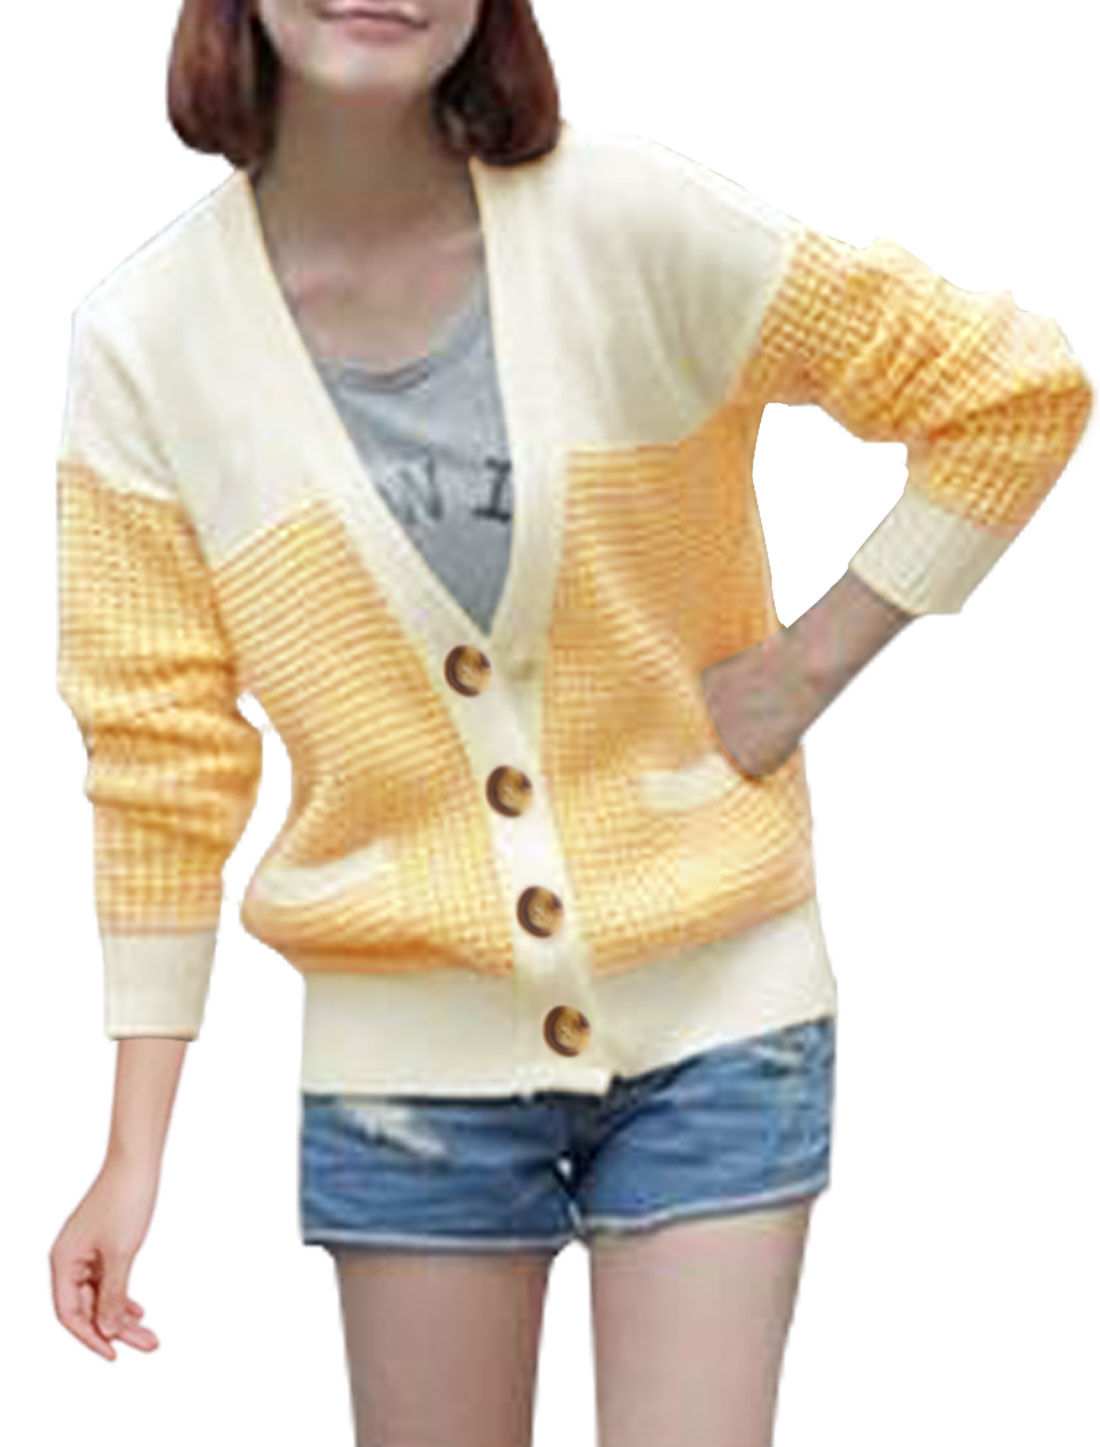 Women Cardigan Two Tone Pockets Knitting Stretch Sweater White Light Yellow L